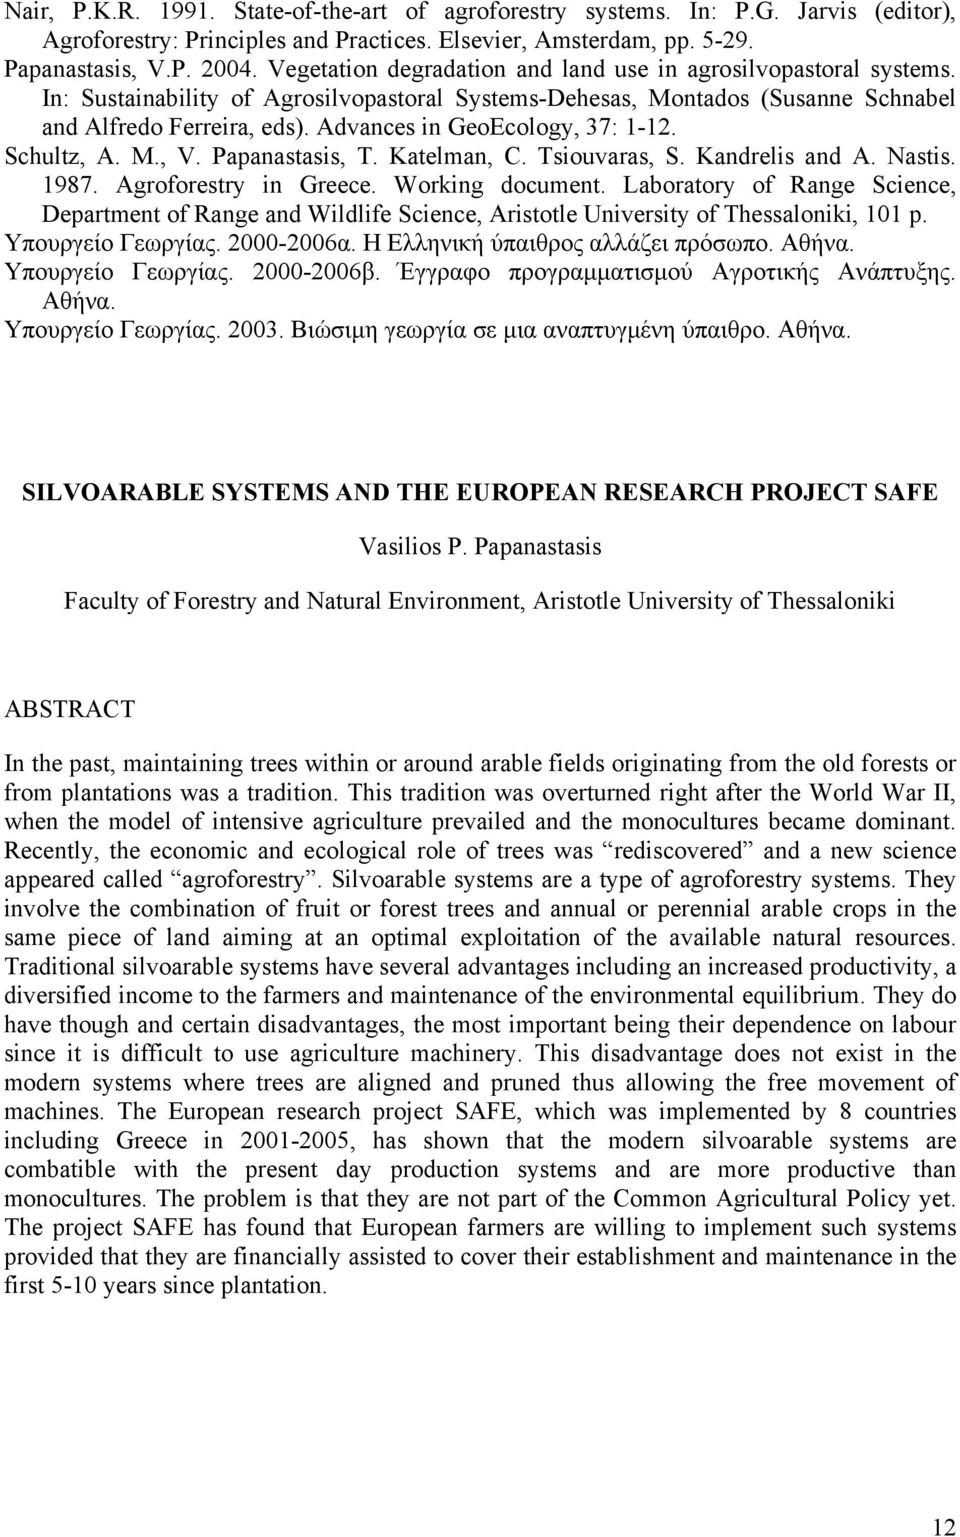 Advances in GeoEcology, 37: 1-12. Schultz, A. M., V. Papanastasis, T. Katelman, C. Tsiouvaras, S. Kandrelis and A. Nastis. 1987. Agroforestry in Greece. Working document.